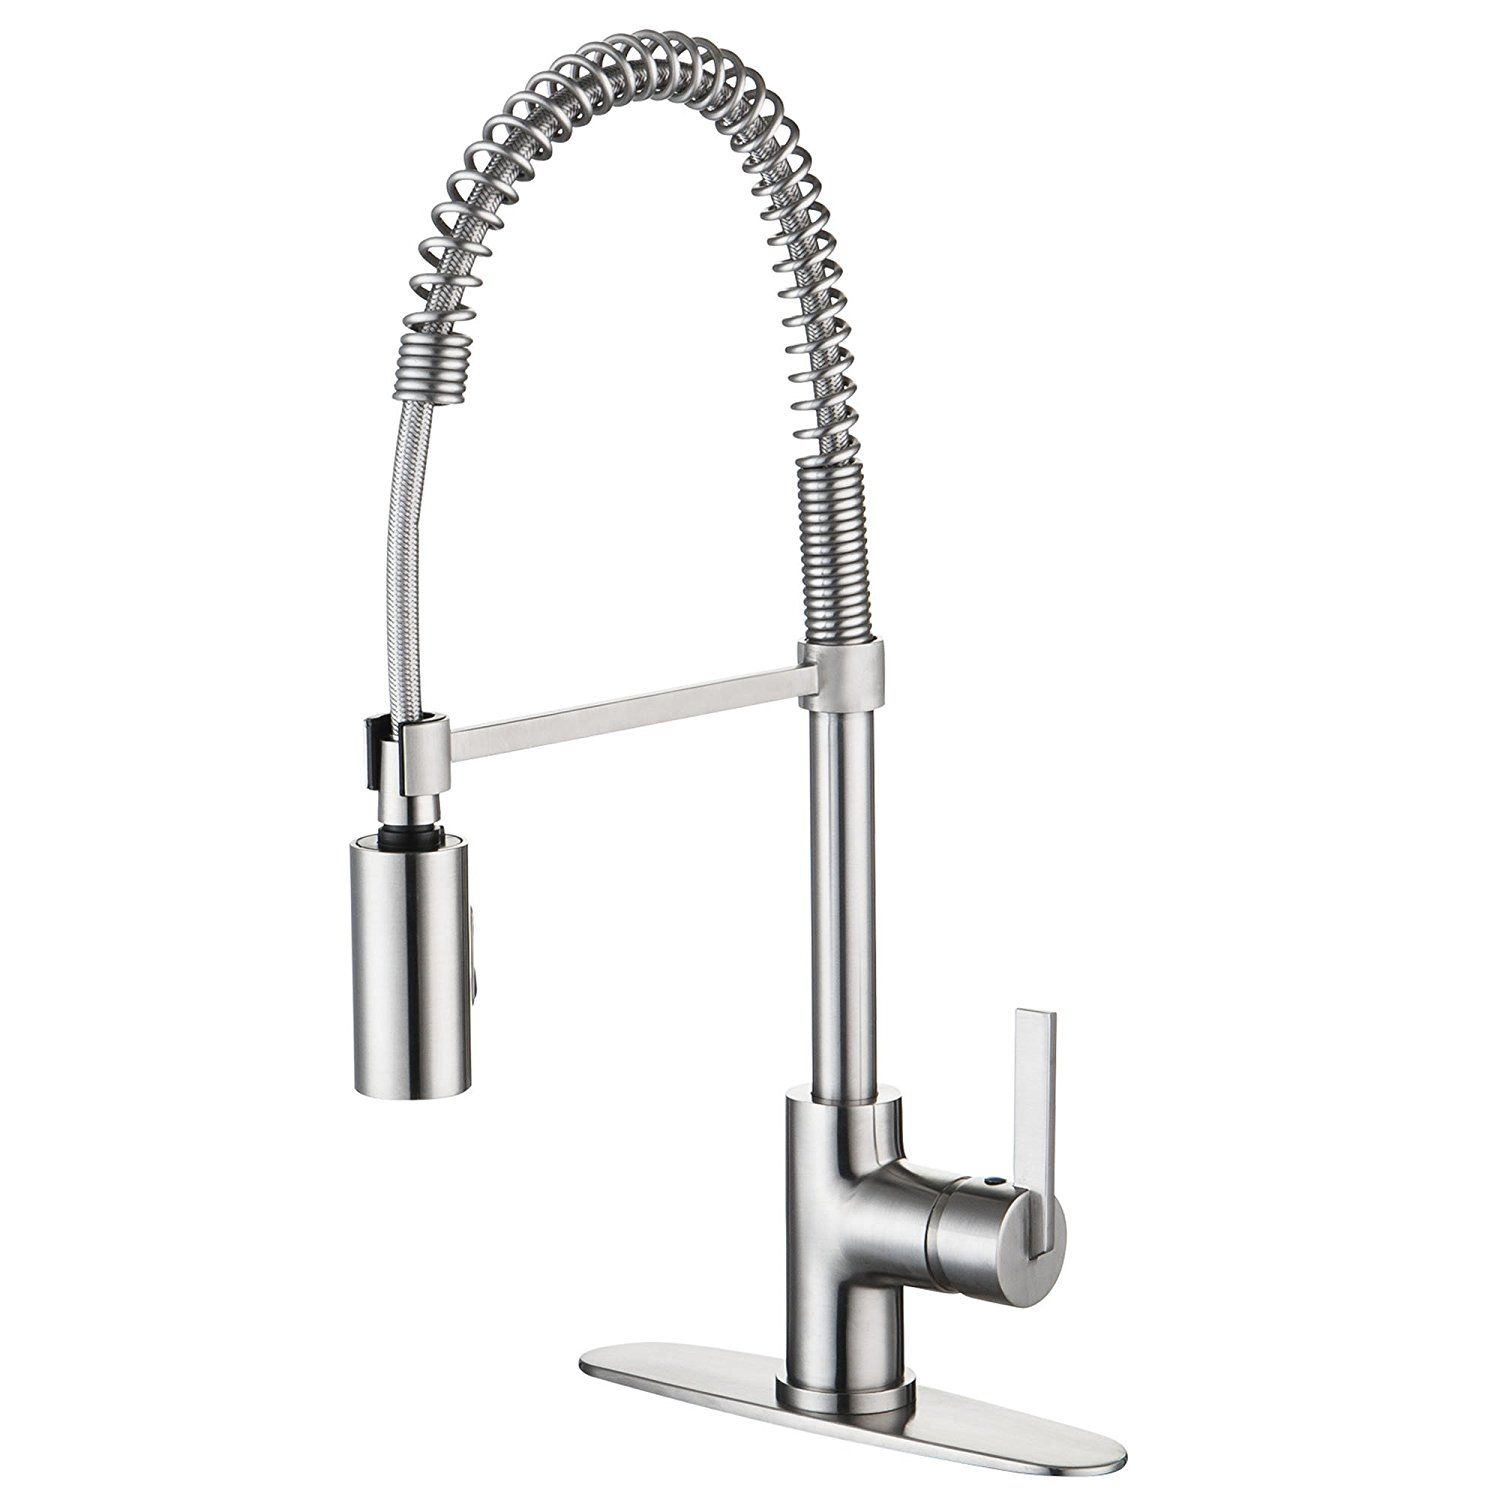 Enzo Rodi Modern Commercial Spring Single Handle Pull Down Sprayer Kitchen  Faucet Stainless Steel, UPC/cUPC AB 1953 Compliant